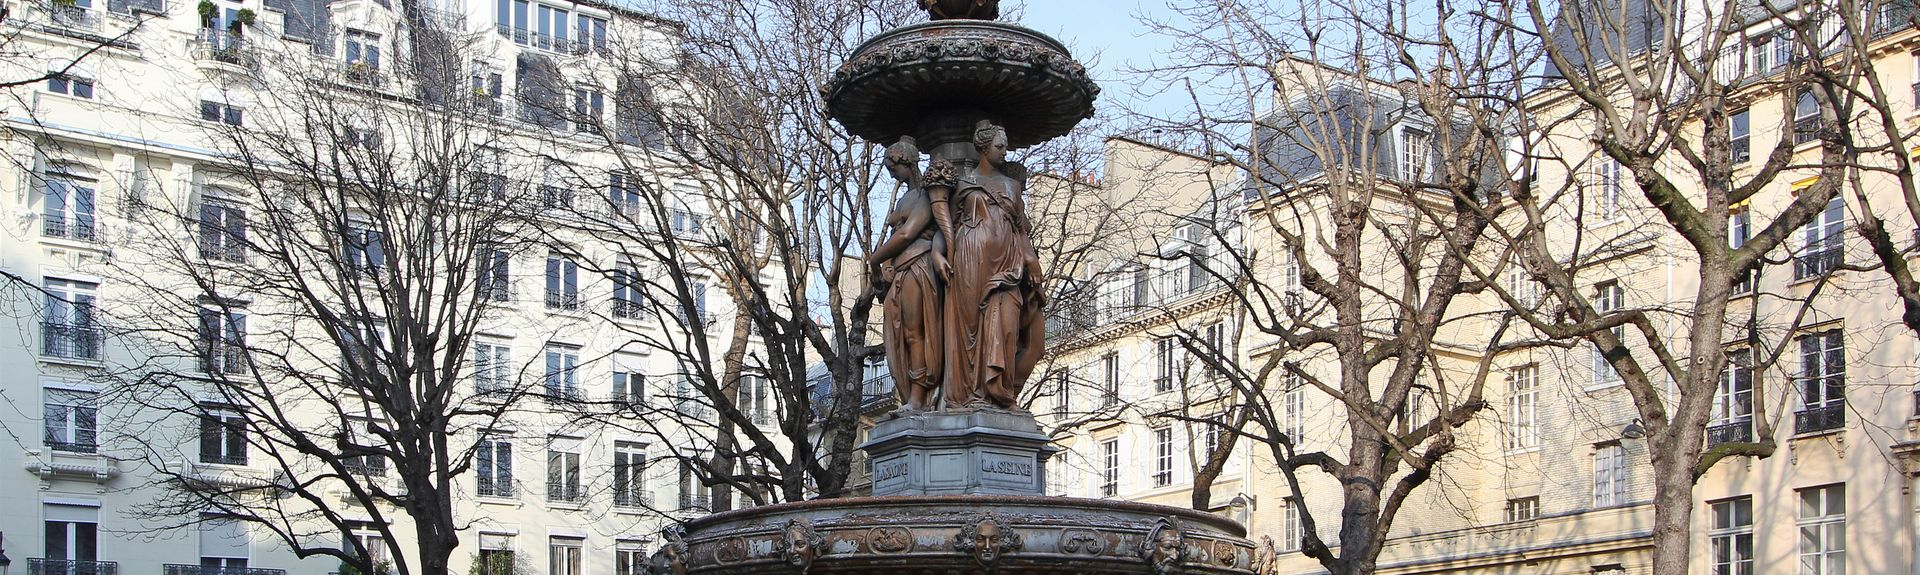 Monceau, Paris, France